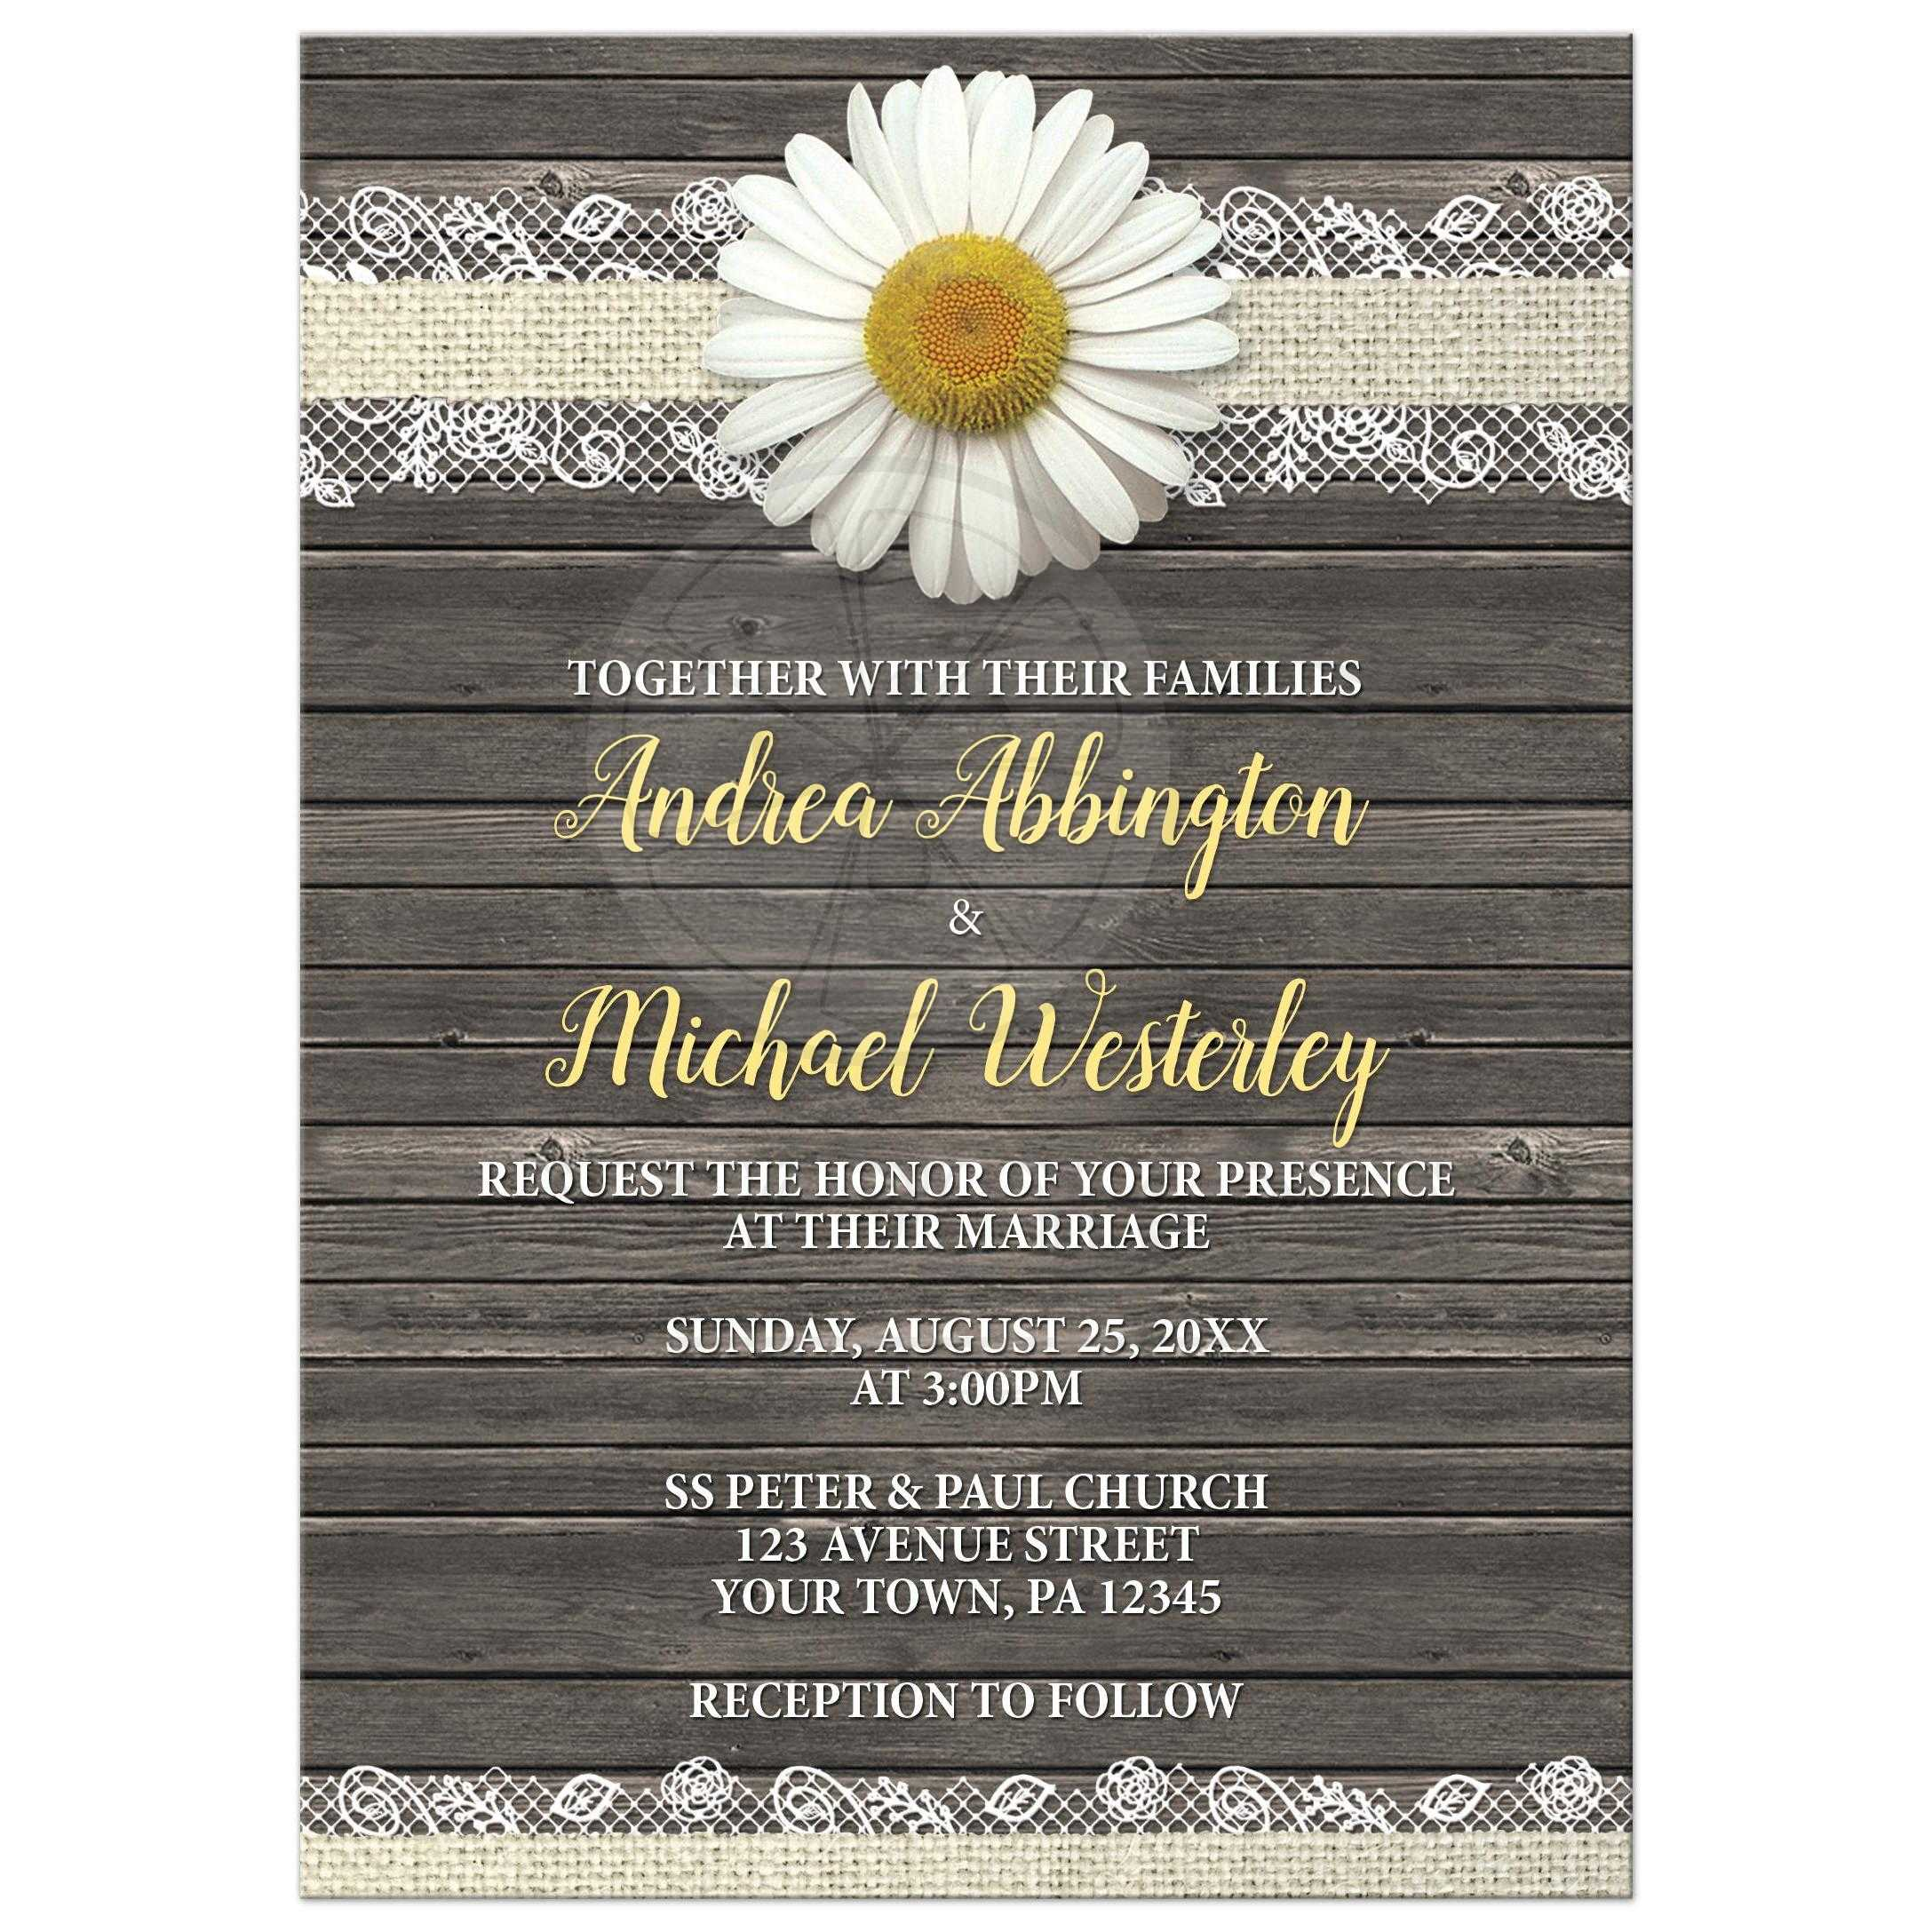 wedding invitations daisy burlap and lace wood - Daisy Wedding Invitations